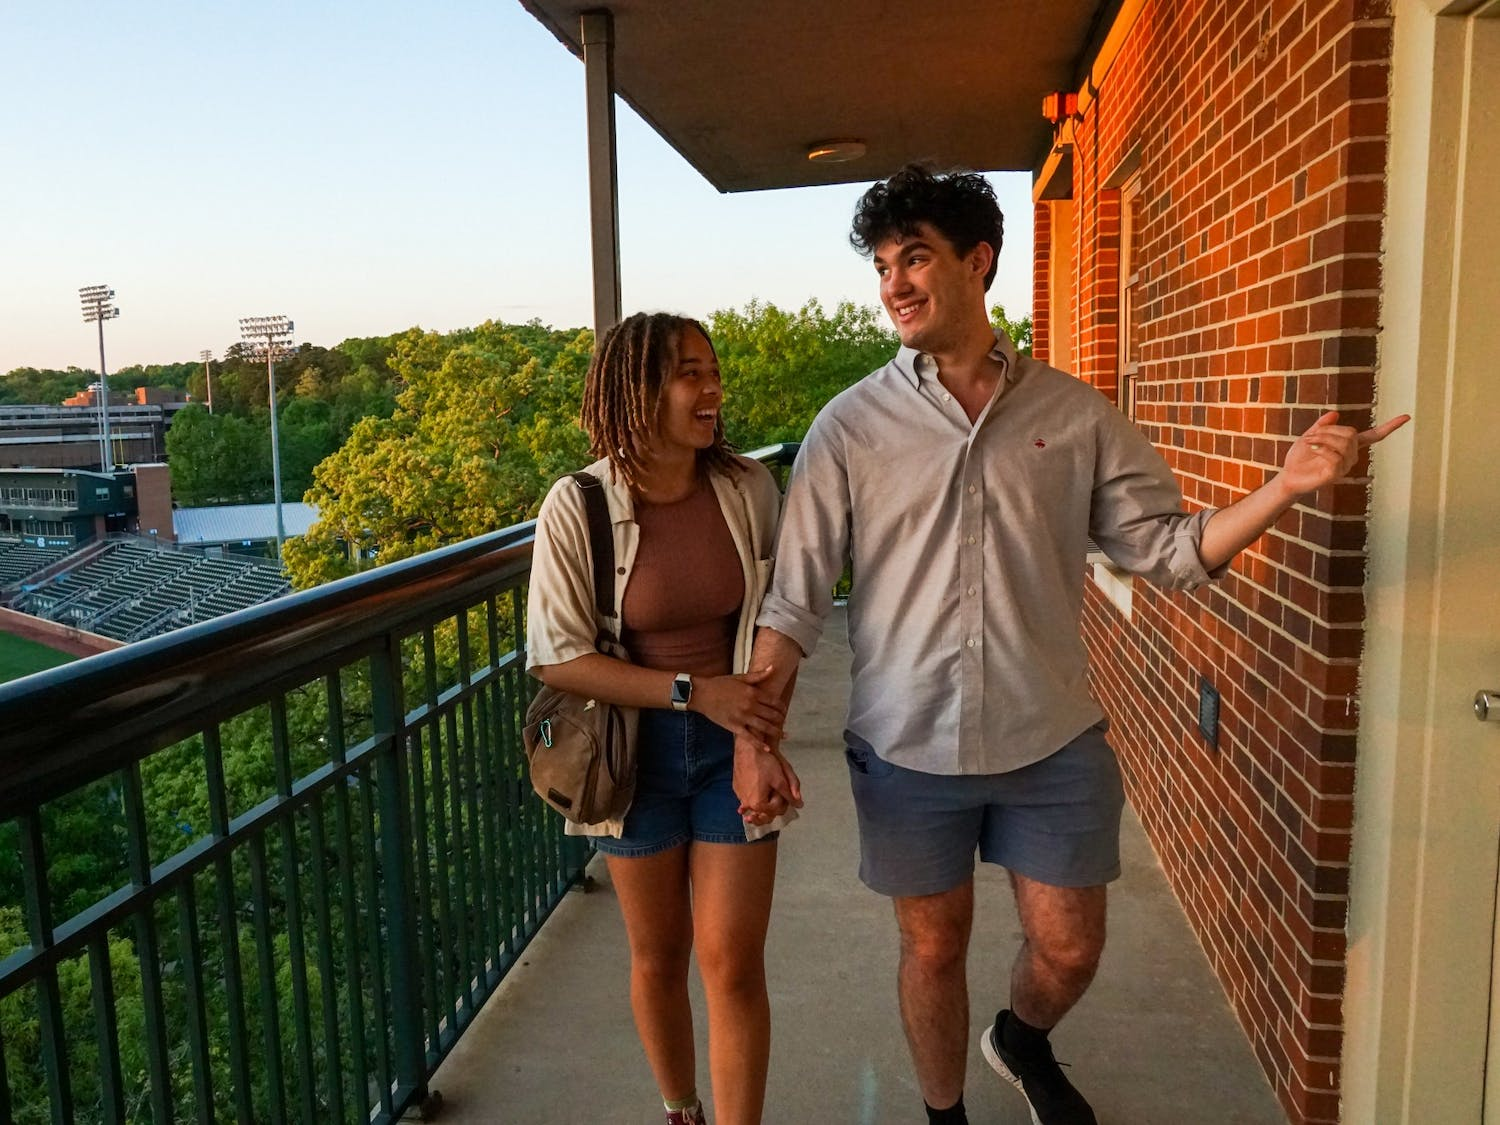 Isaiah McCleod and Kaelyn Wall are two first-year students  who met in the fall semester and are currently dating. COVID-19 has presented challenges, but also brought them together.